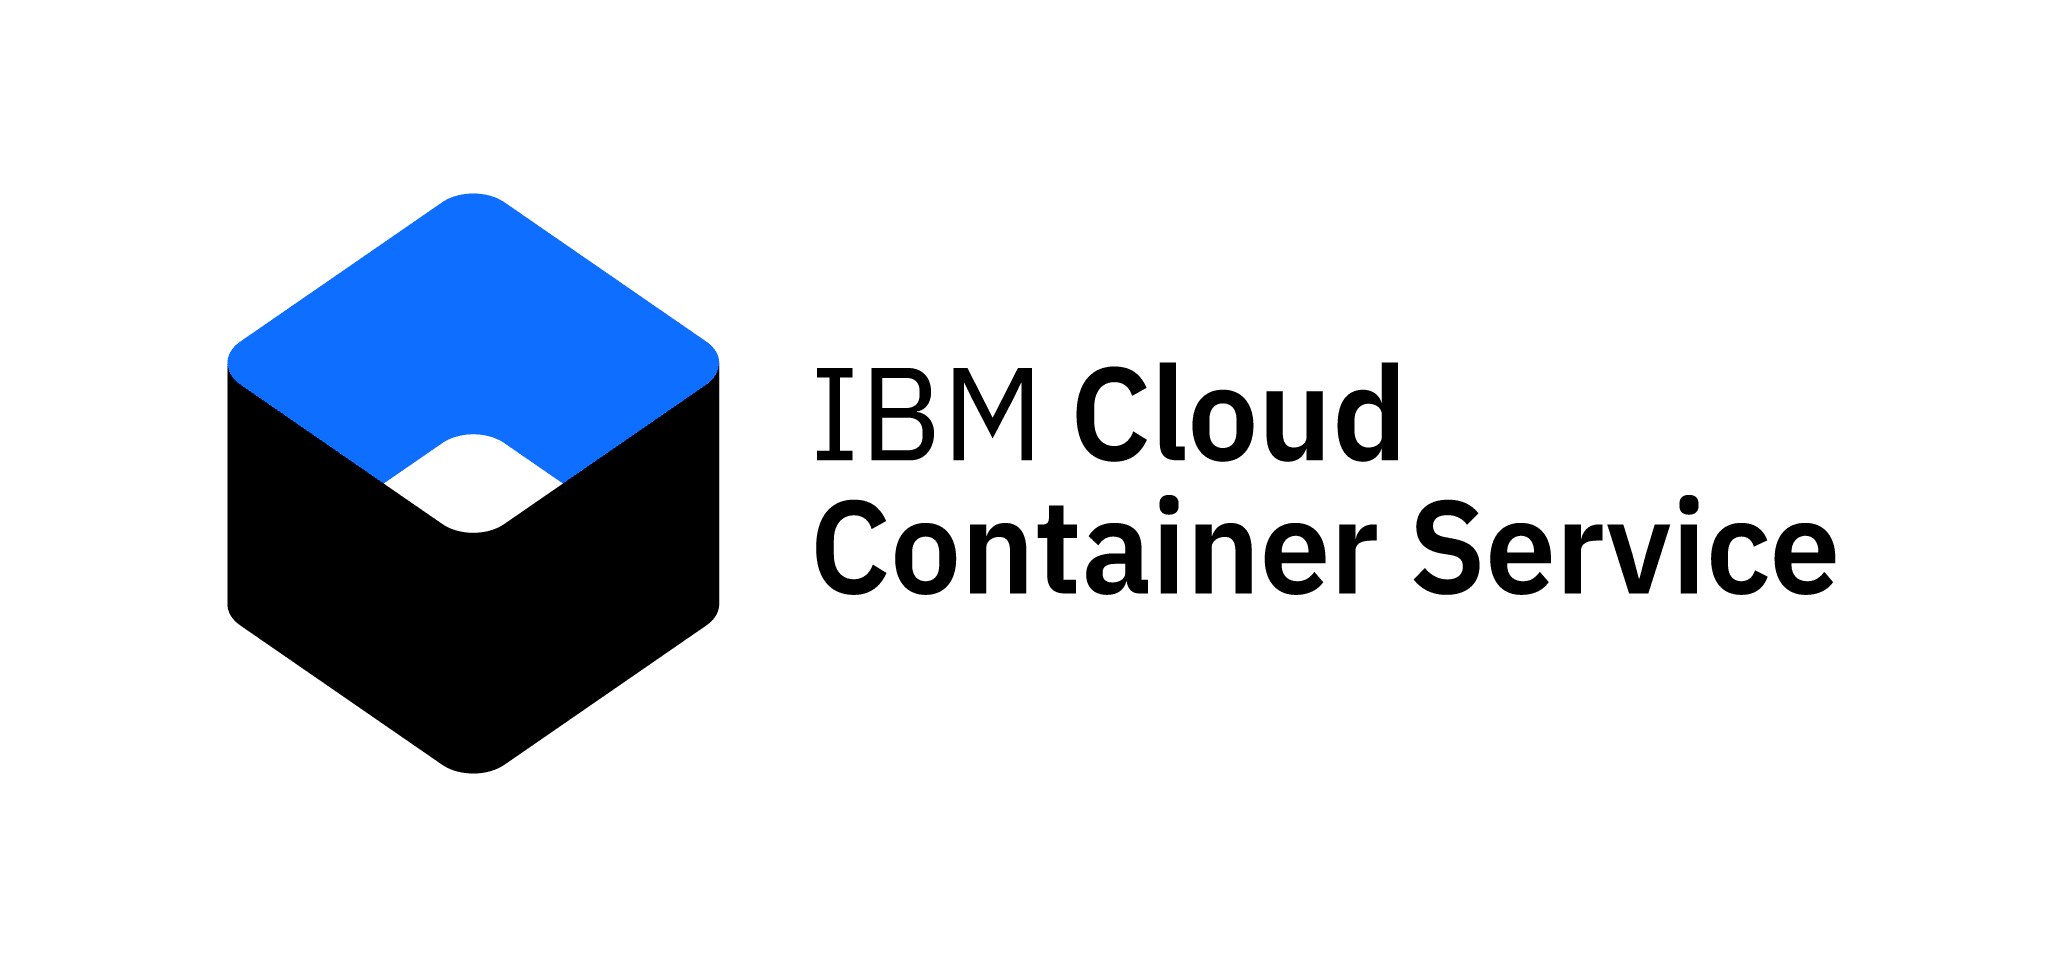 Deploy Kubernetes with Confidence on IBM Cloud